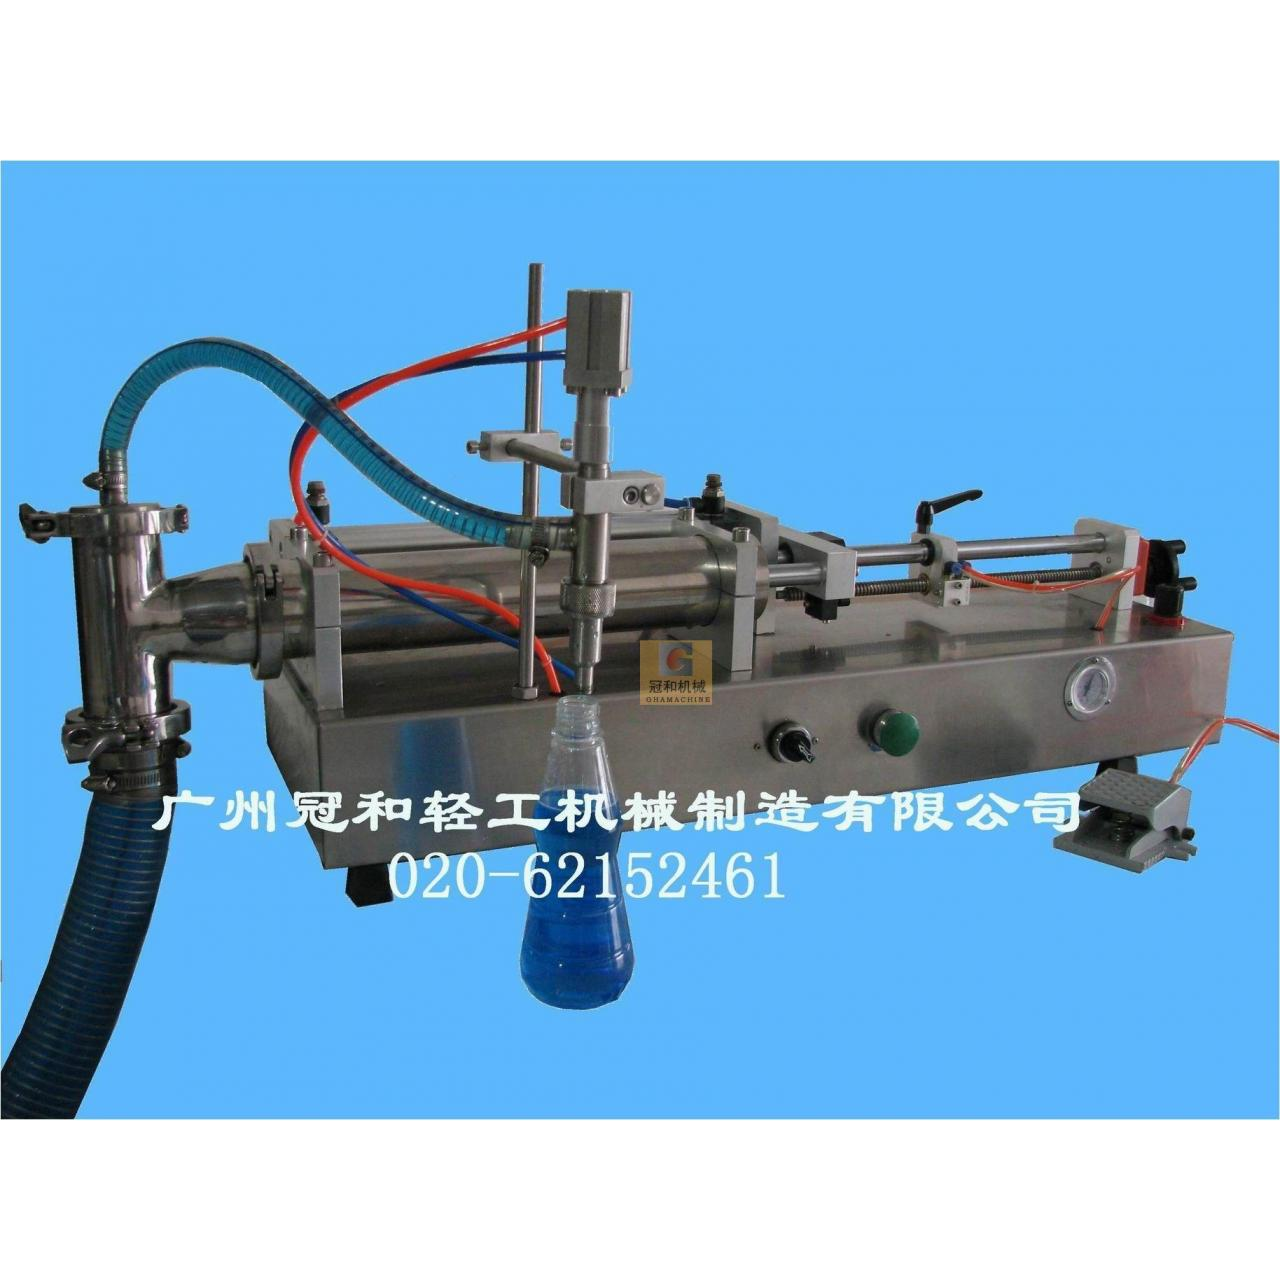 China pneumatic semi-automatic filling machine wholesale